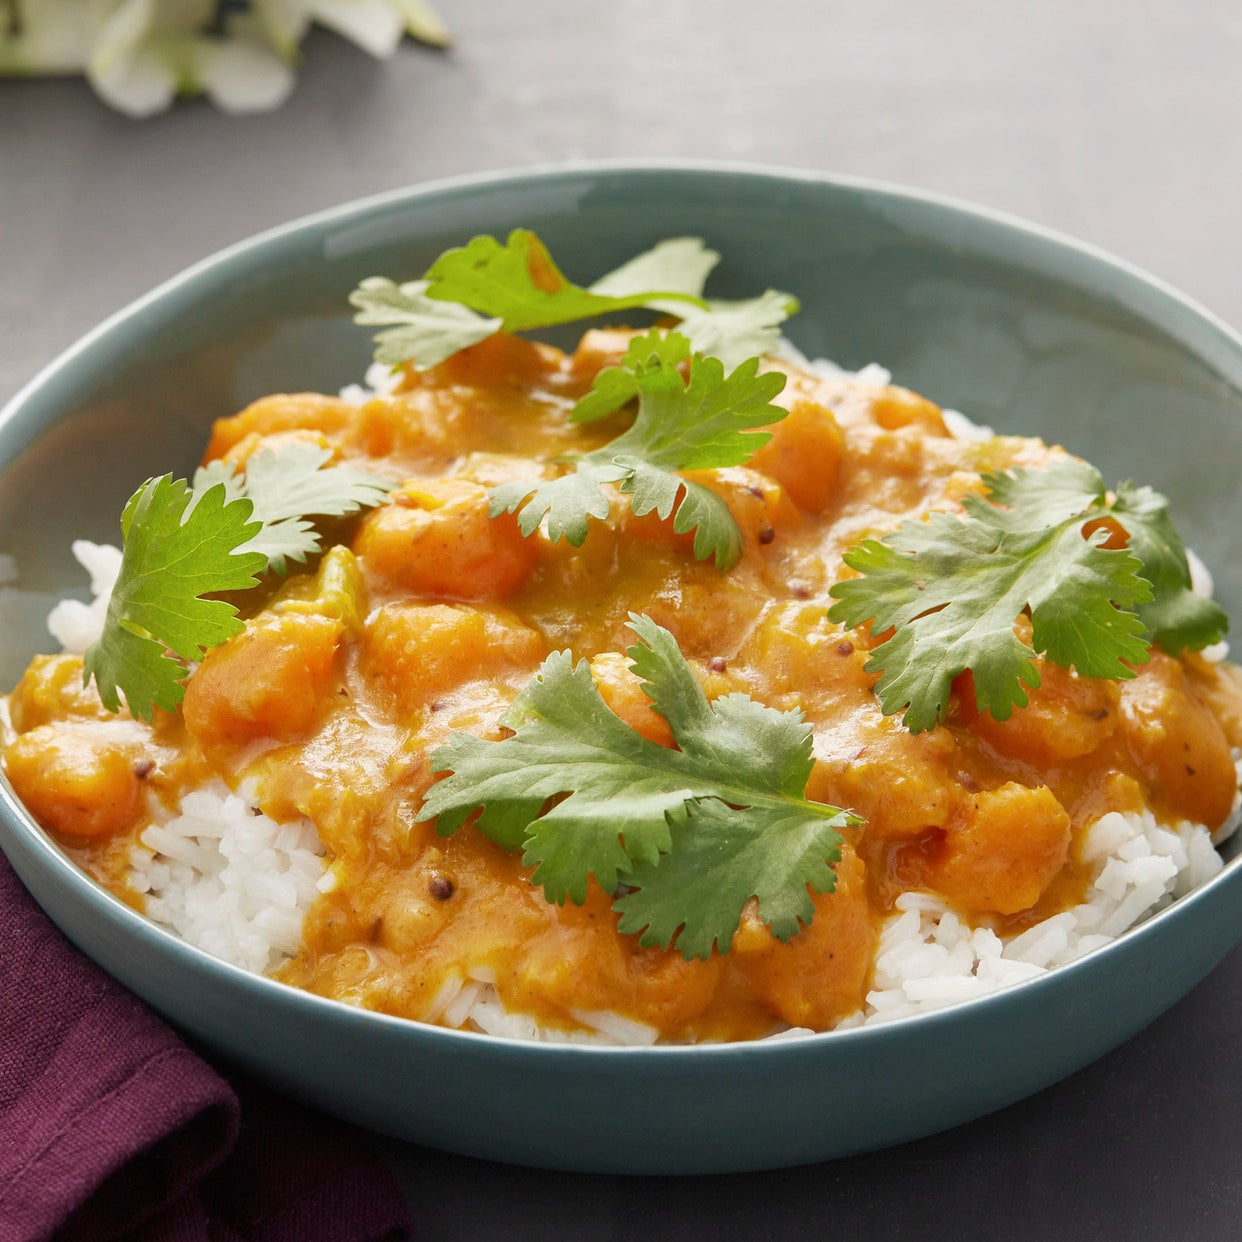 Recipe south indian squash curry with jasmine rice blue apron south indian squash curry with jasmine rice forumfinder